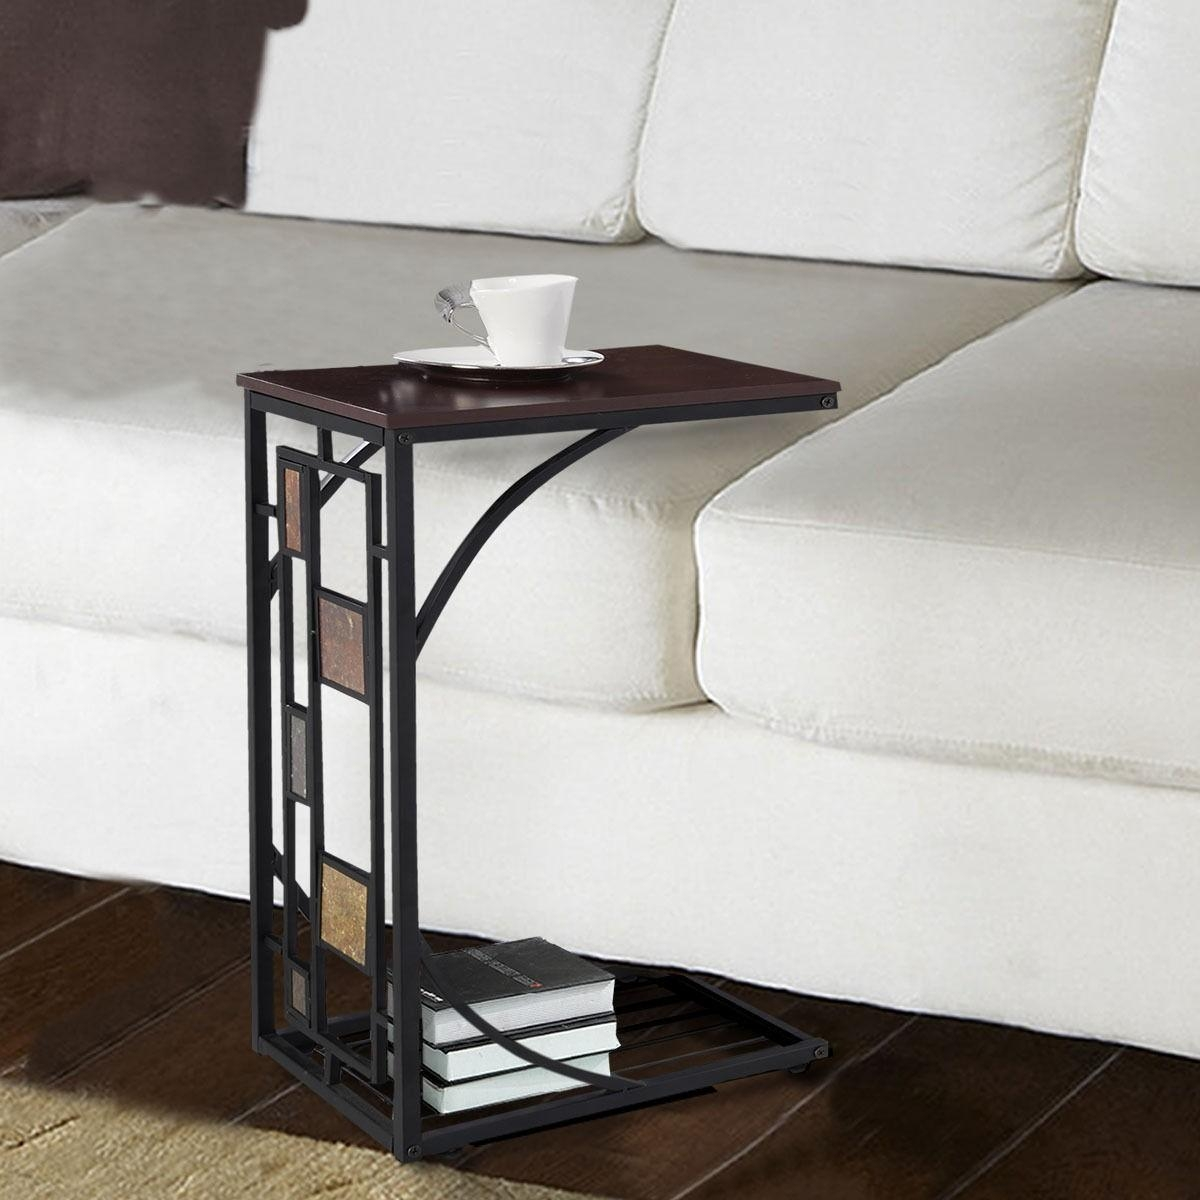 Sofas Center : Il Fullxfull 953802260 3S7H Sofa Tray Table Slides In Under Sofa Tray Tables (Image 5 of 20)